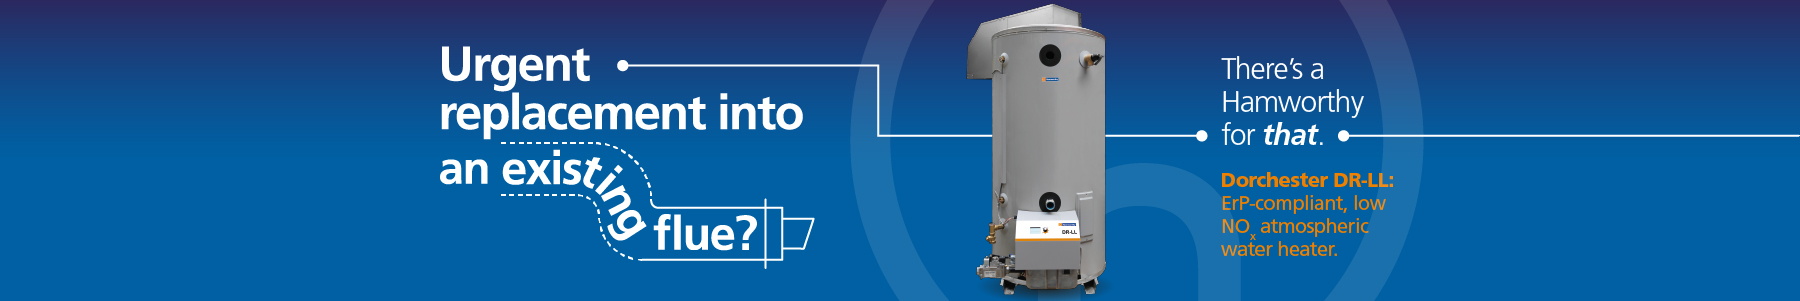 Atmospheric water heater for urgent replacements